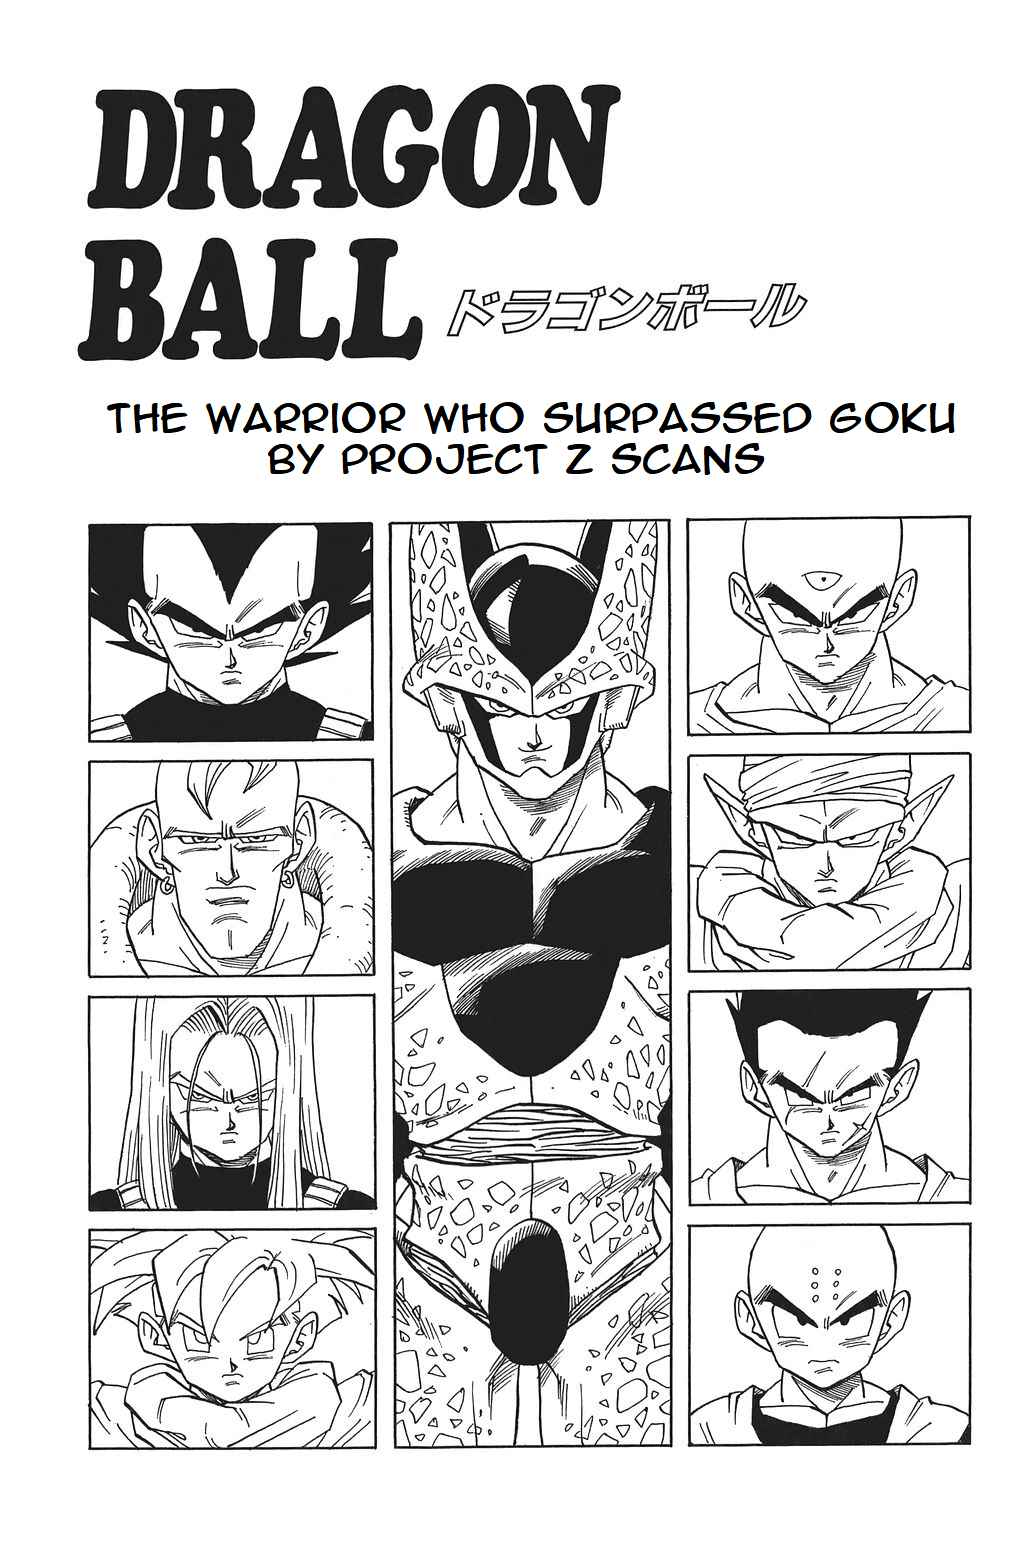 Dragon Ball Vol. 34 Ch. 403 The Warrior Who Surpassed Goku